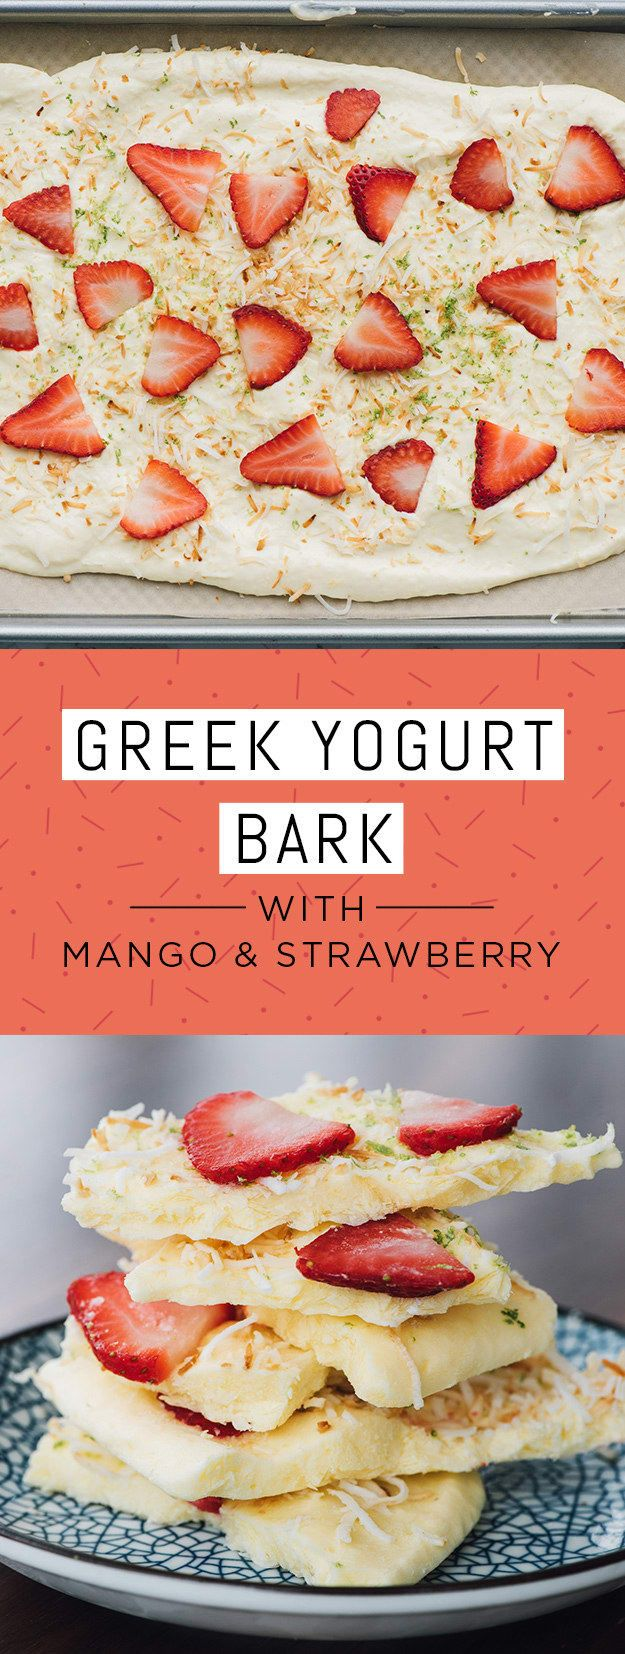 """Ingredients: 2 cups 2% Greek yogurt; 1 cup diced mango; 5 strawberries, sliced; ¼ cup unsweetened shredded coconut, toasted; zest of 1 lime.To make: Combine Greek yogurt and mango in a blender and puree until smooth. Spread mixture onto a parchment-lined sheet tray into an even ¼"""" layer. Top with shredded sliced strawberries, coconut, and lime zest. Freeze uncovered until frozen, about two hours. Break into pieces and serve immediately. Keep any uneaten bark in freezer."""